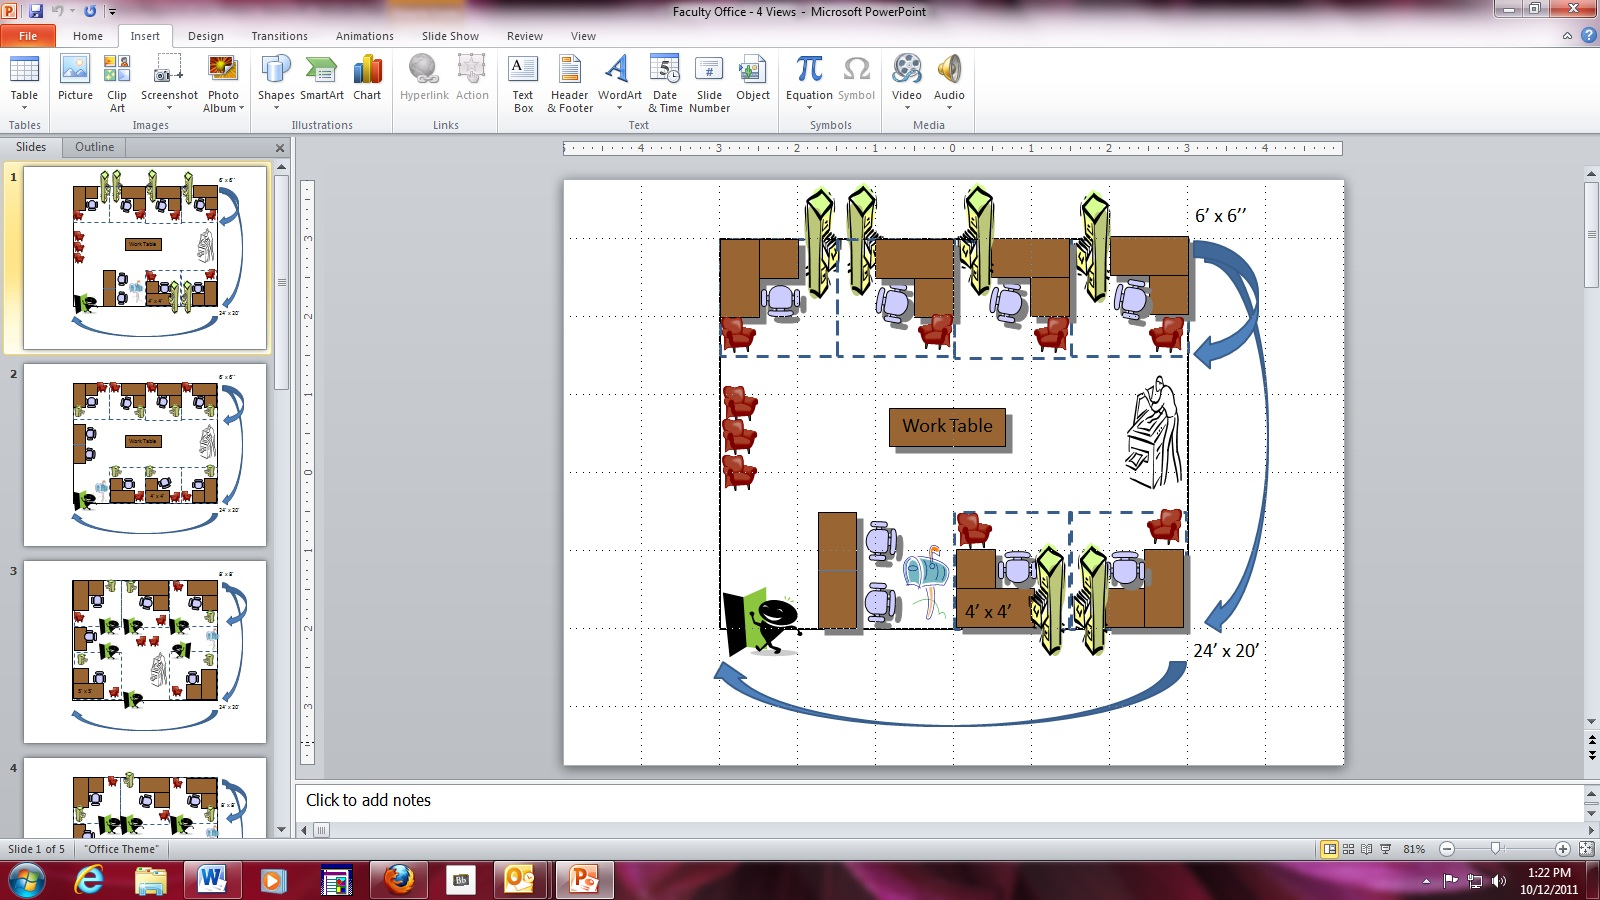 this is an example of an office space created using microsoft powerpoint